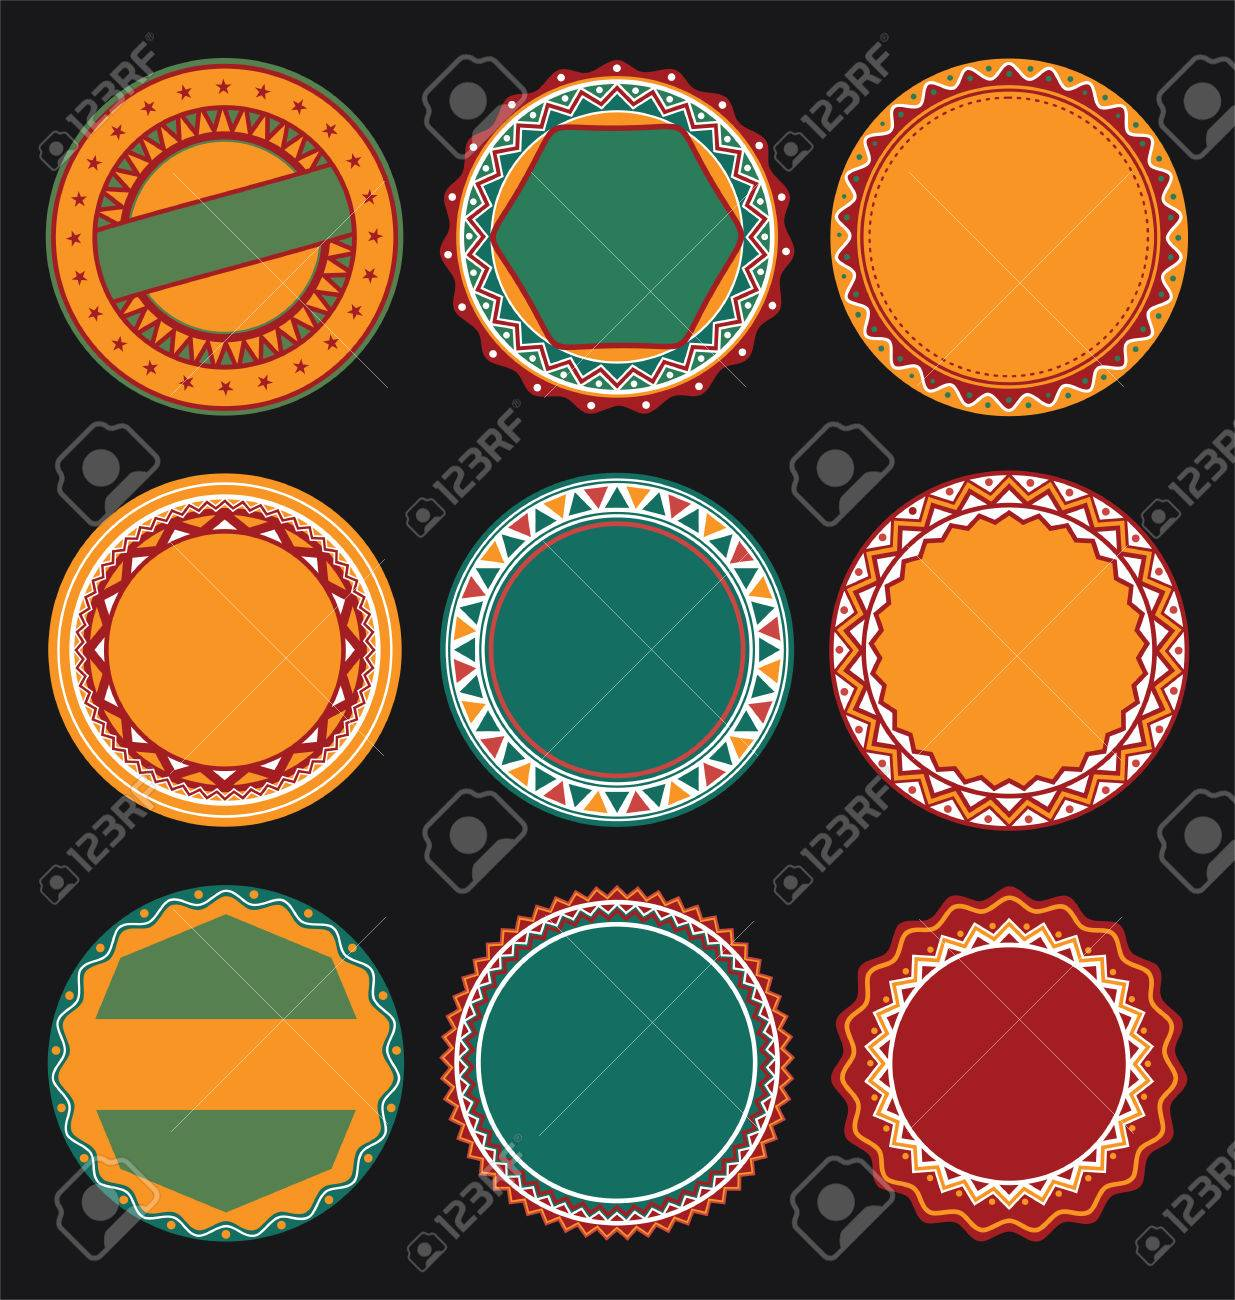 Collection of mexican round decorative border frames with black collection of mexican round decorative border frames with black filled background stock vector 53100244 thecheapjerseys Images